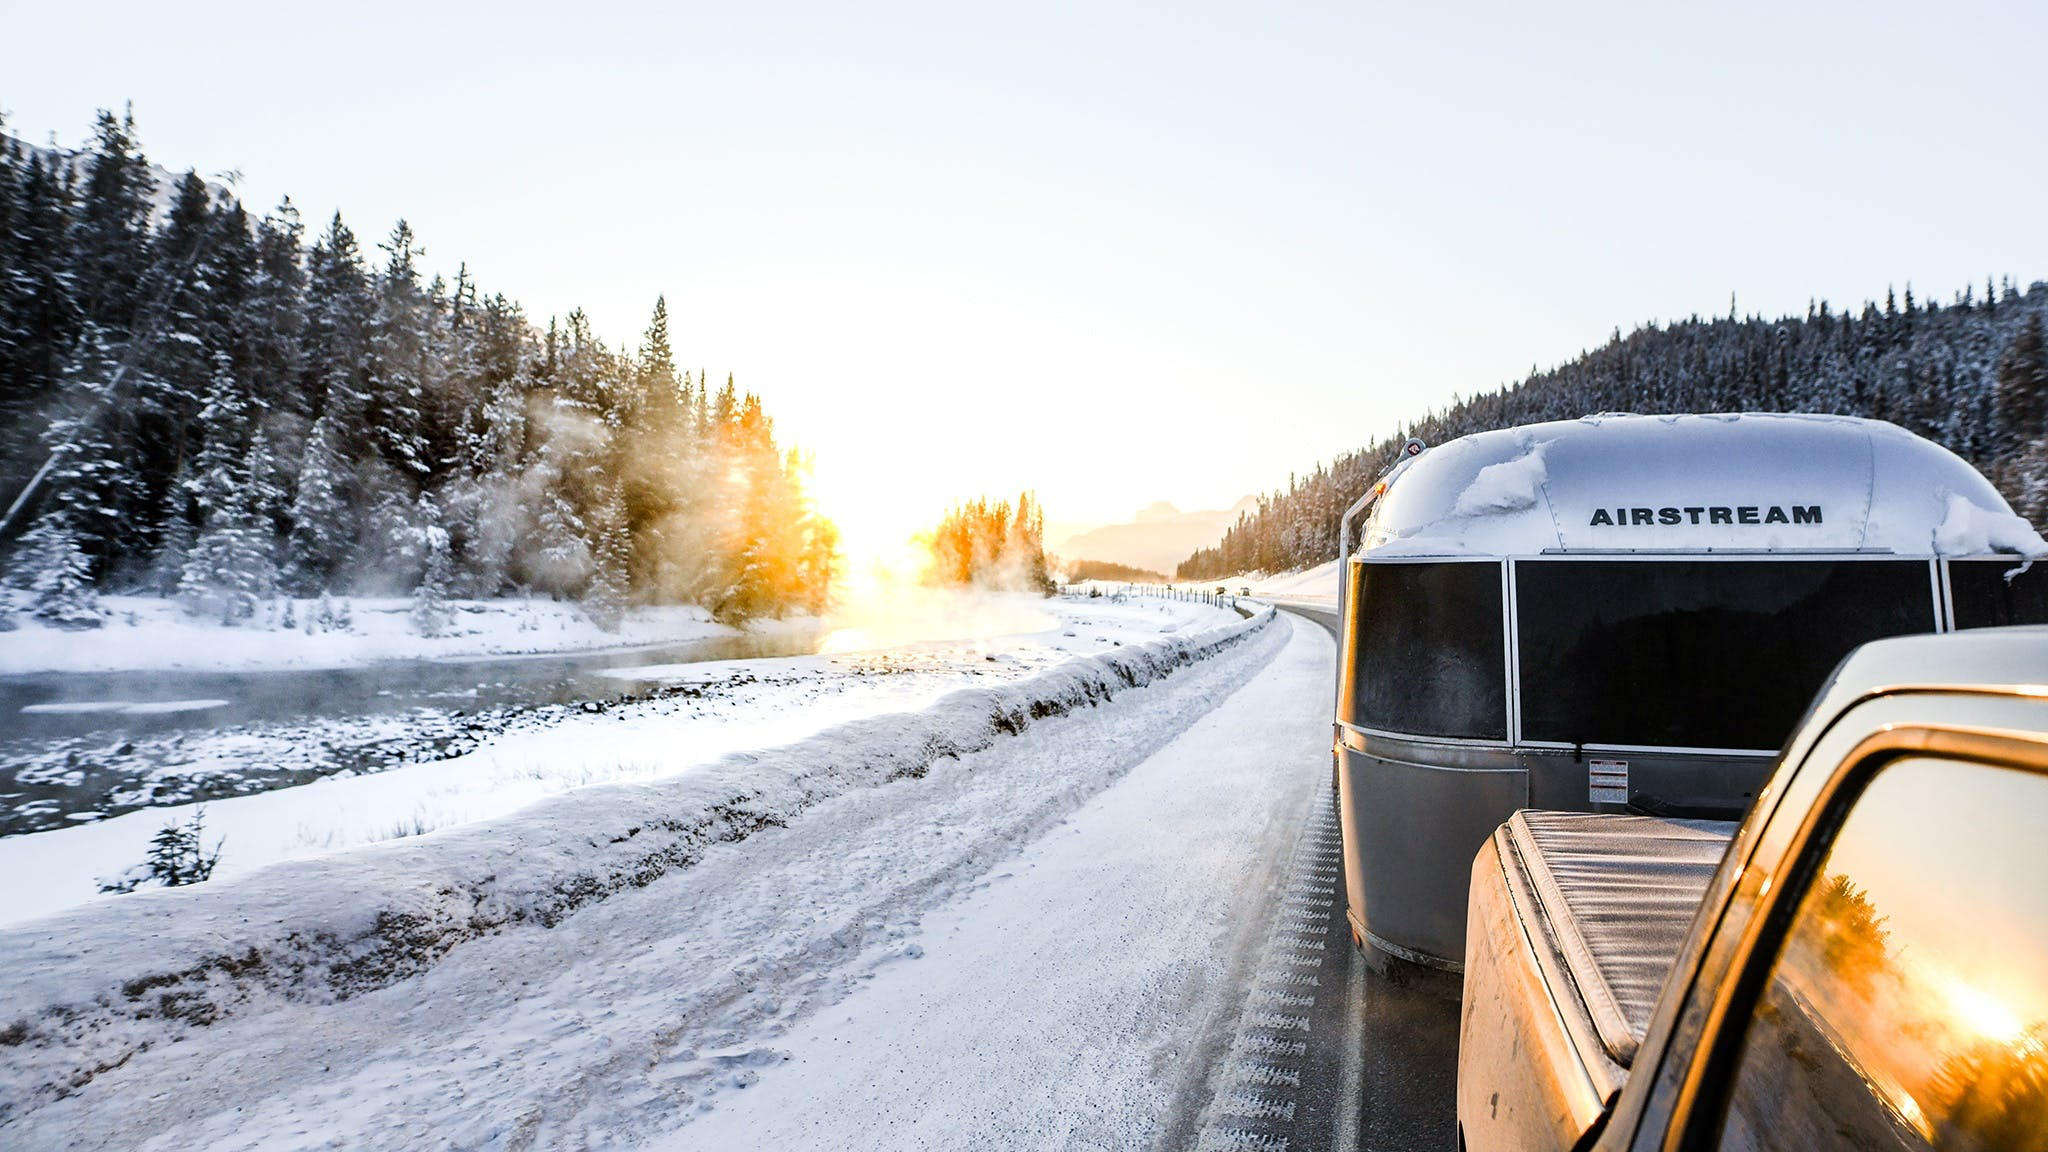 Airstream Travel Trailer Pickup Truck Winter Towing Snow